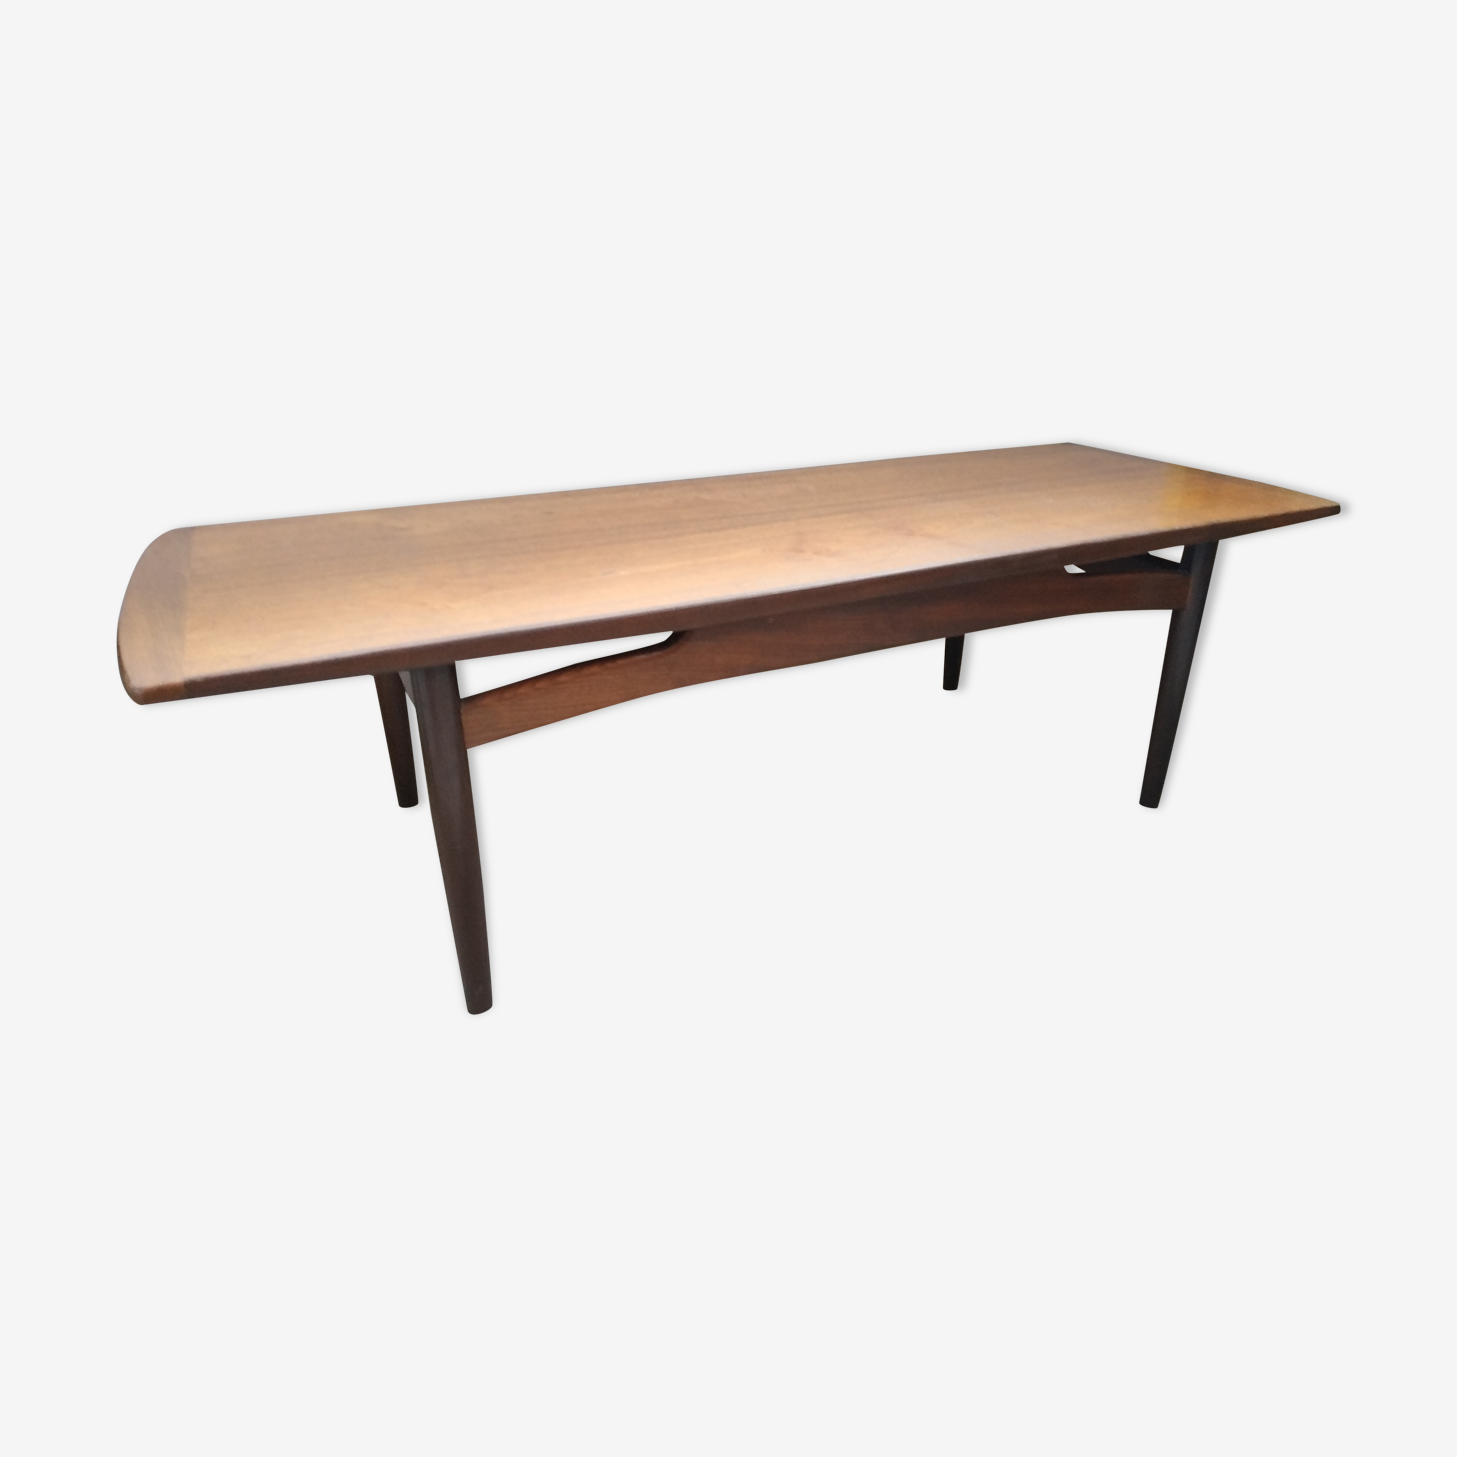 G-Plan coffee table